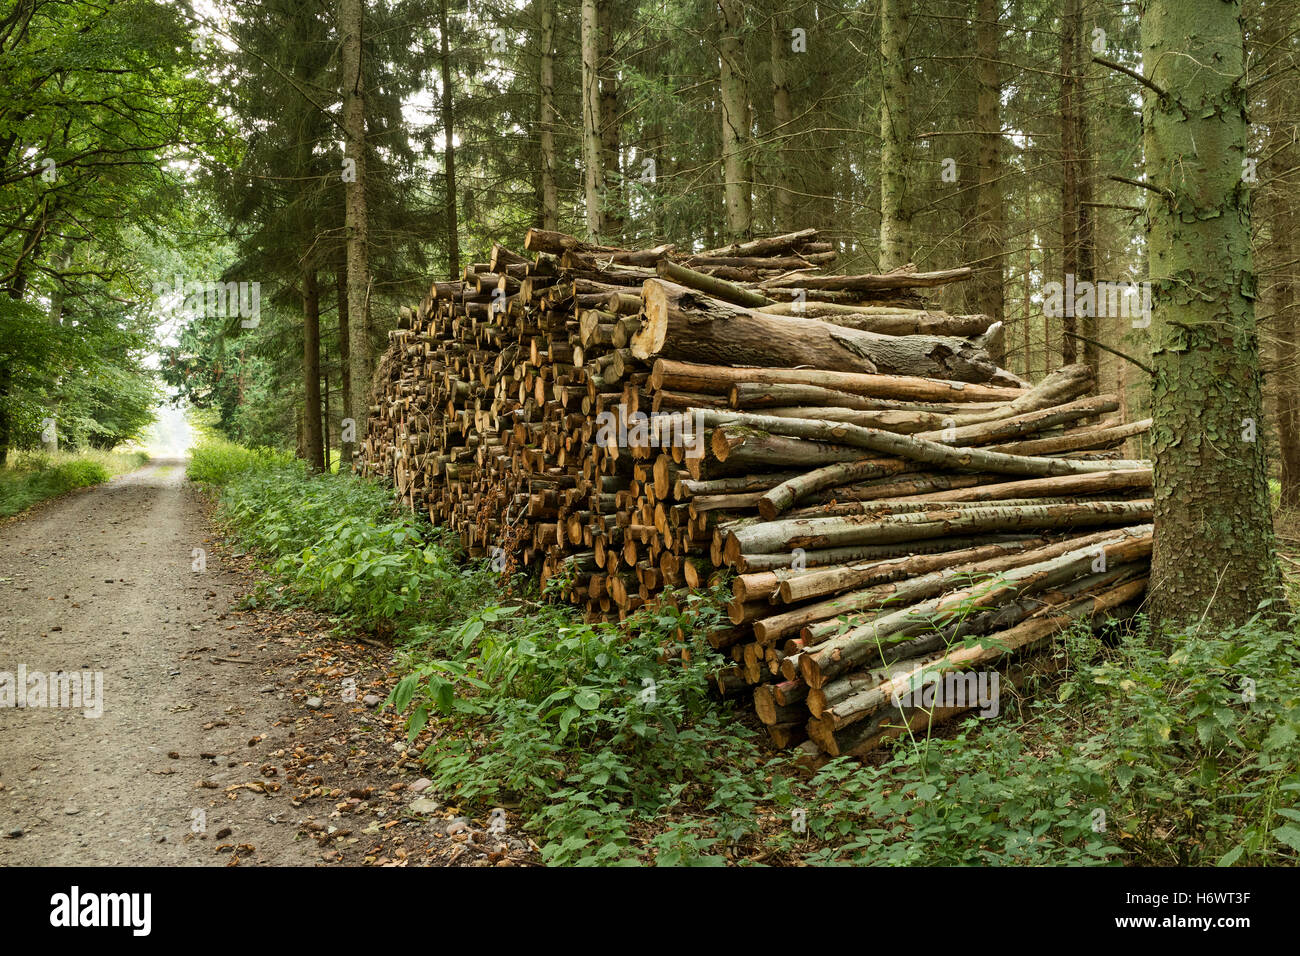 Pile of cutted wood in the forest for firewood - Stock Image